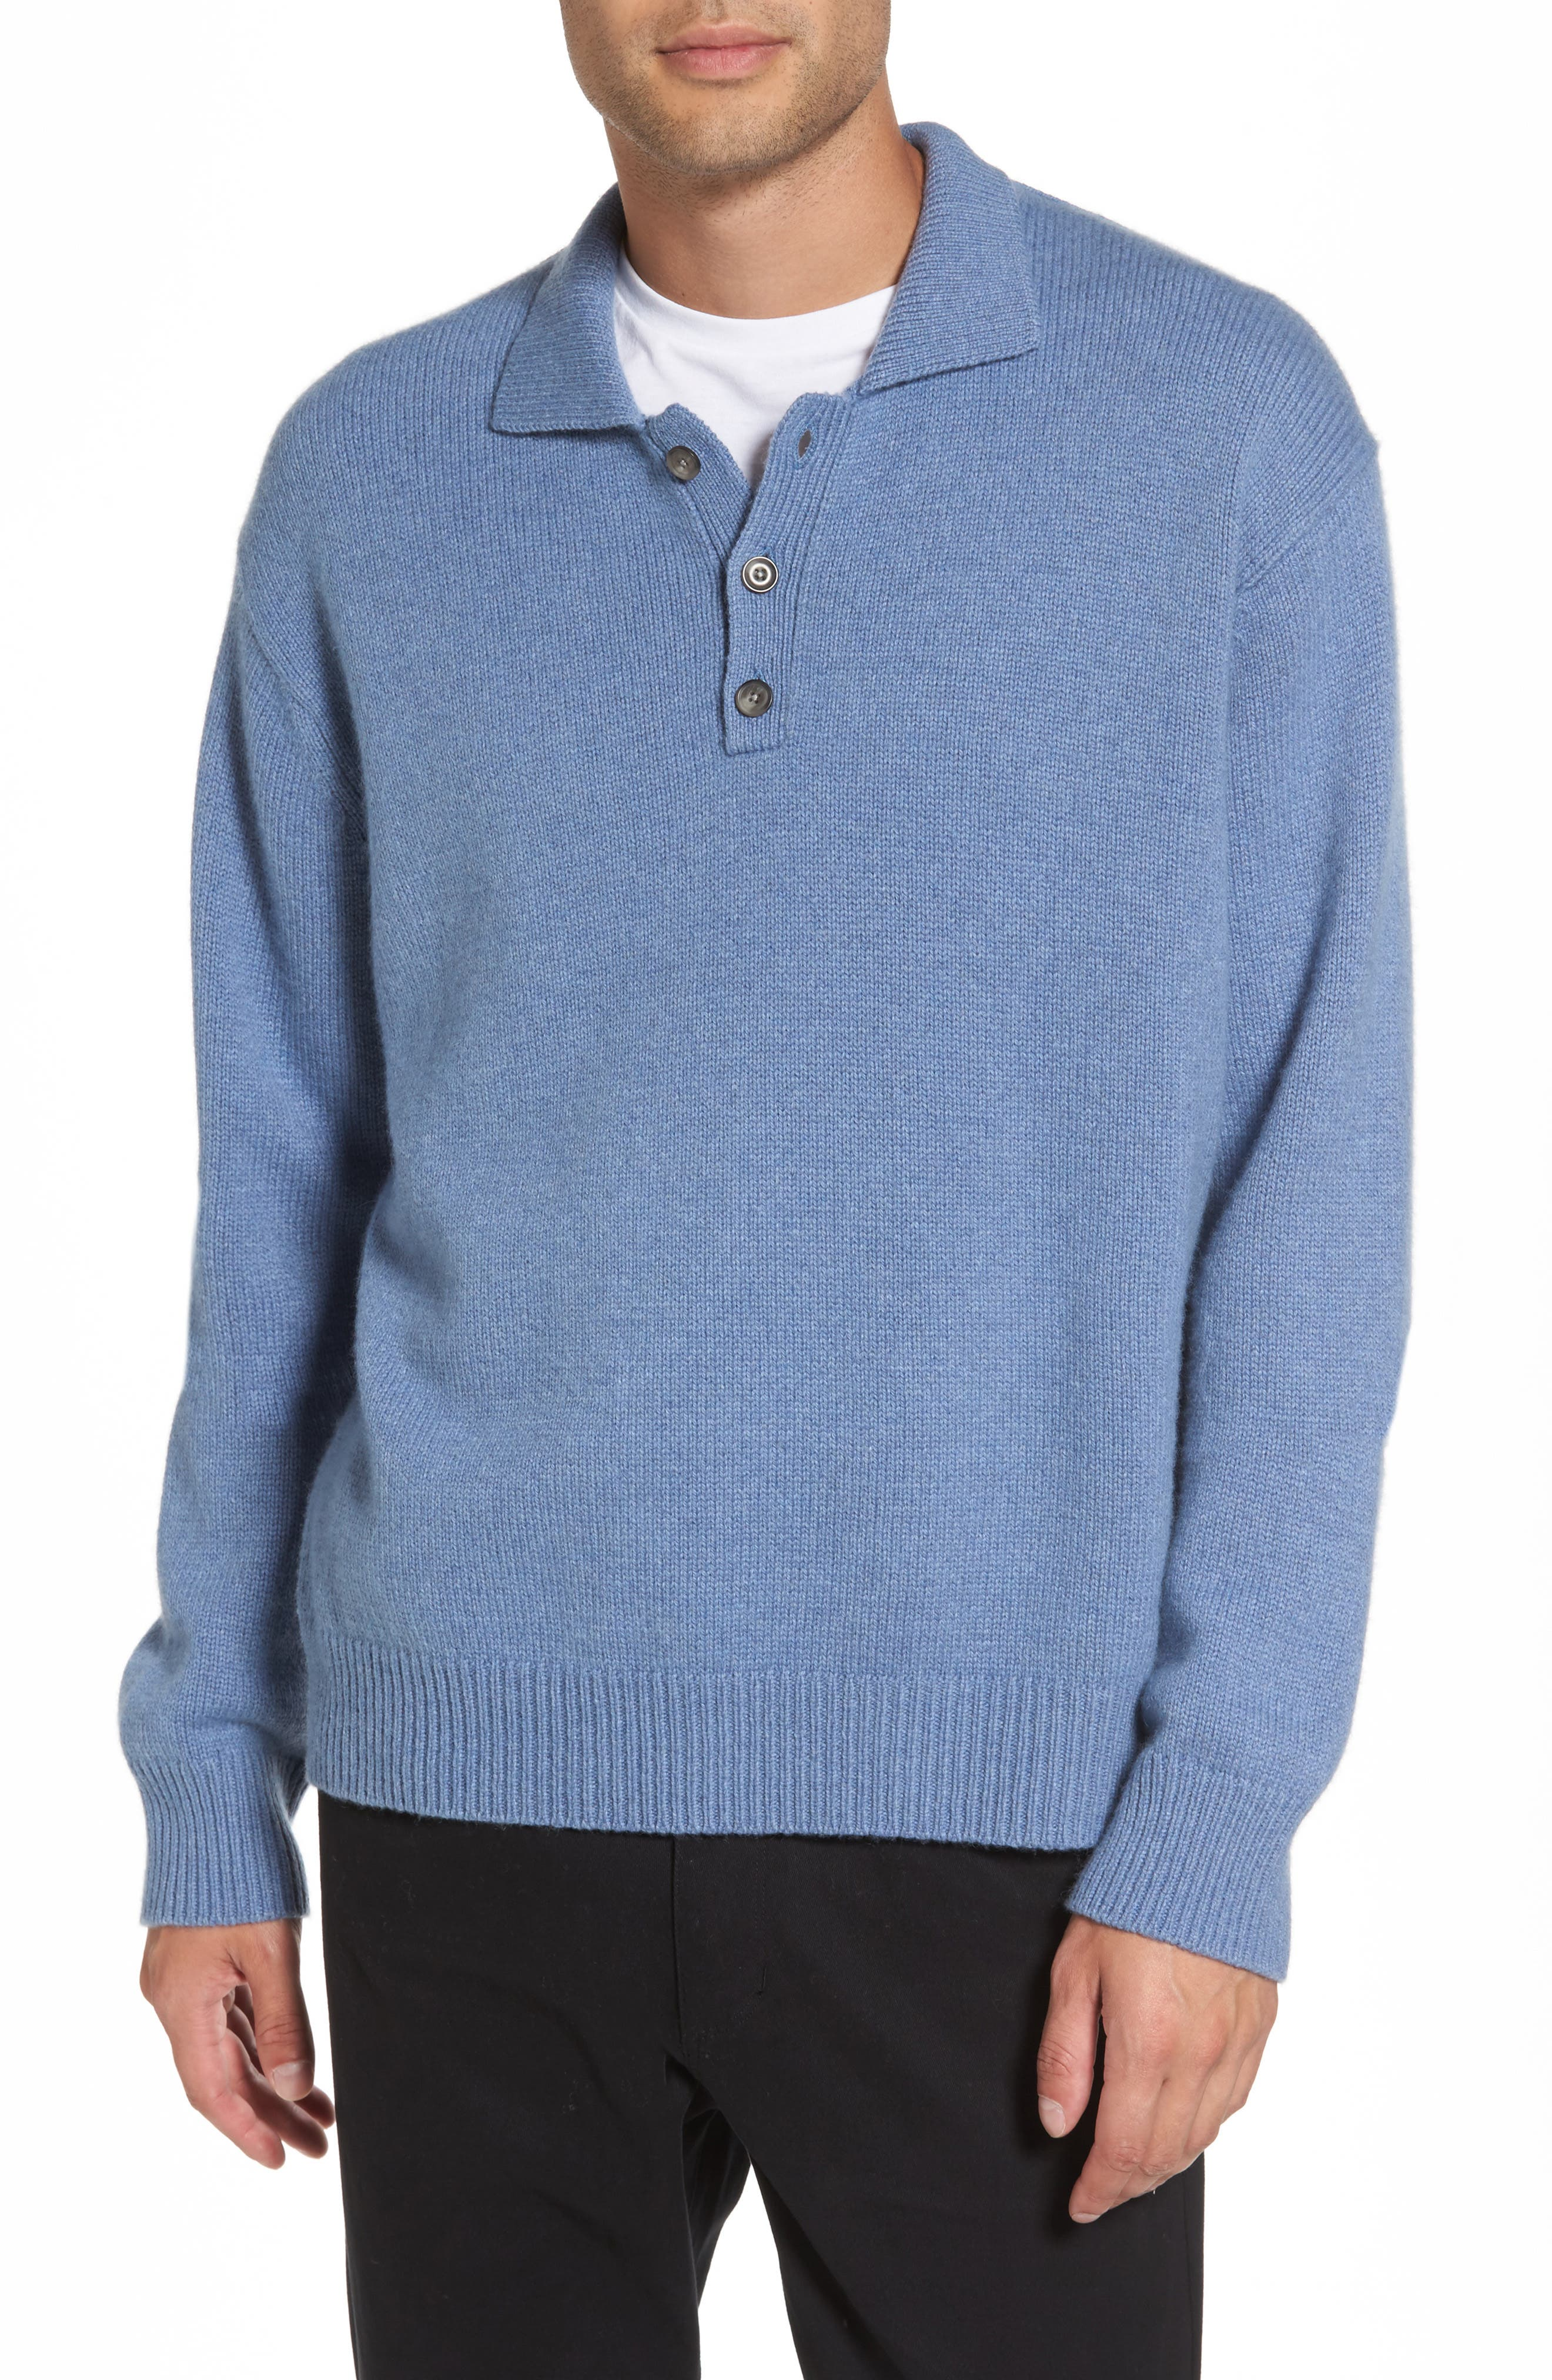 Wool & Cashmere Polo Sweater,                             Main thumbnail 1, color,                             495